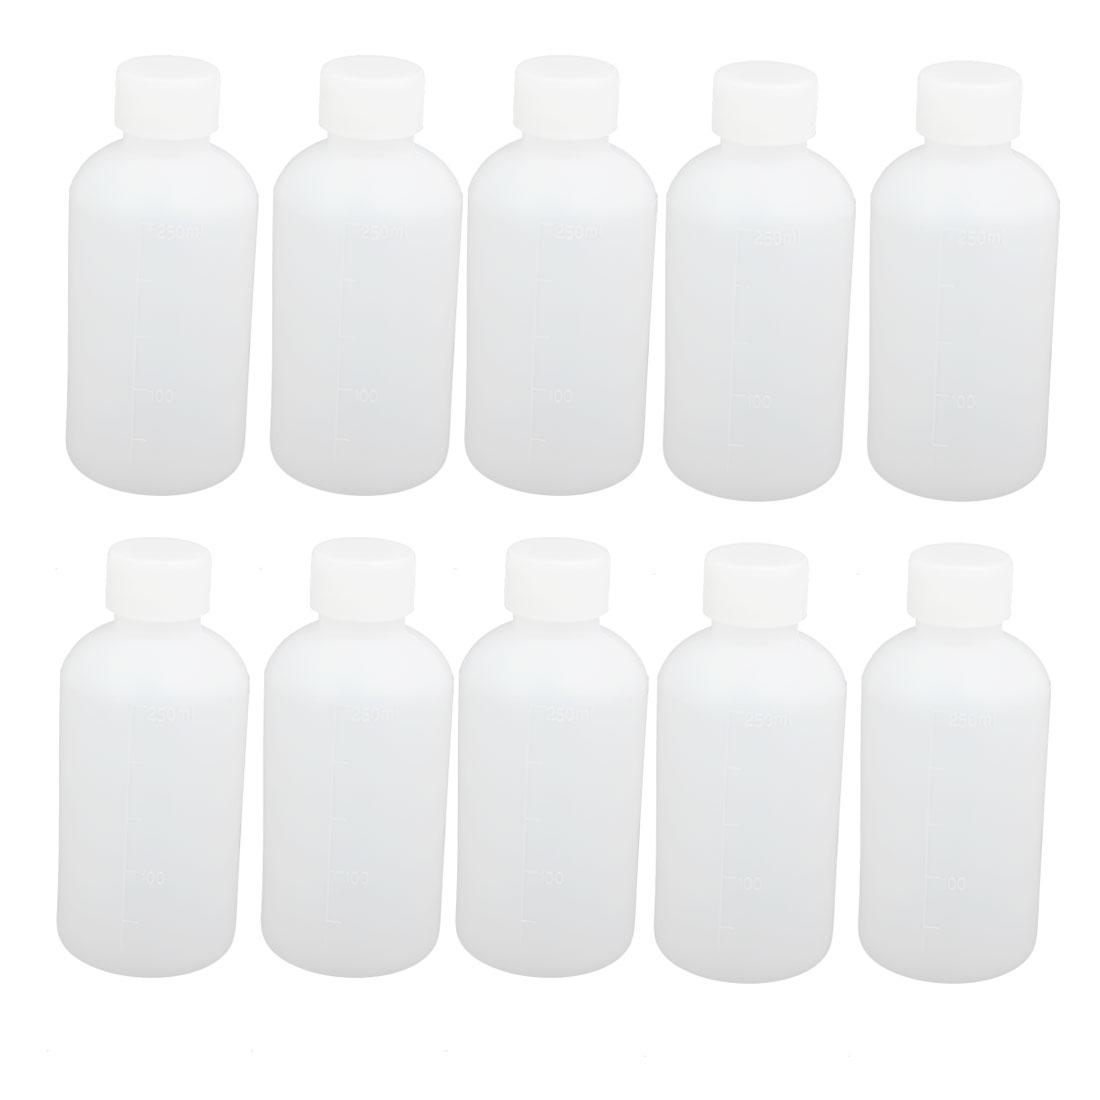 10pcs 60mm Dia 135mm Height 250ml HDPE Plastic Round Small Mouth Bottle White